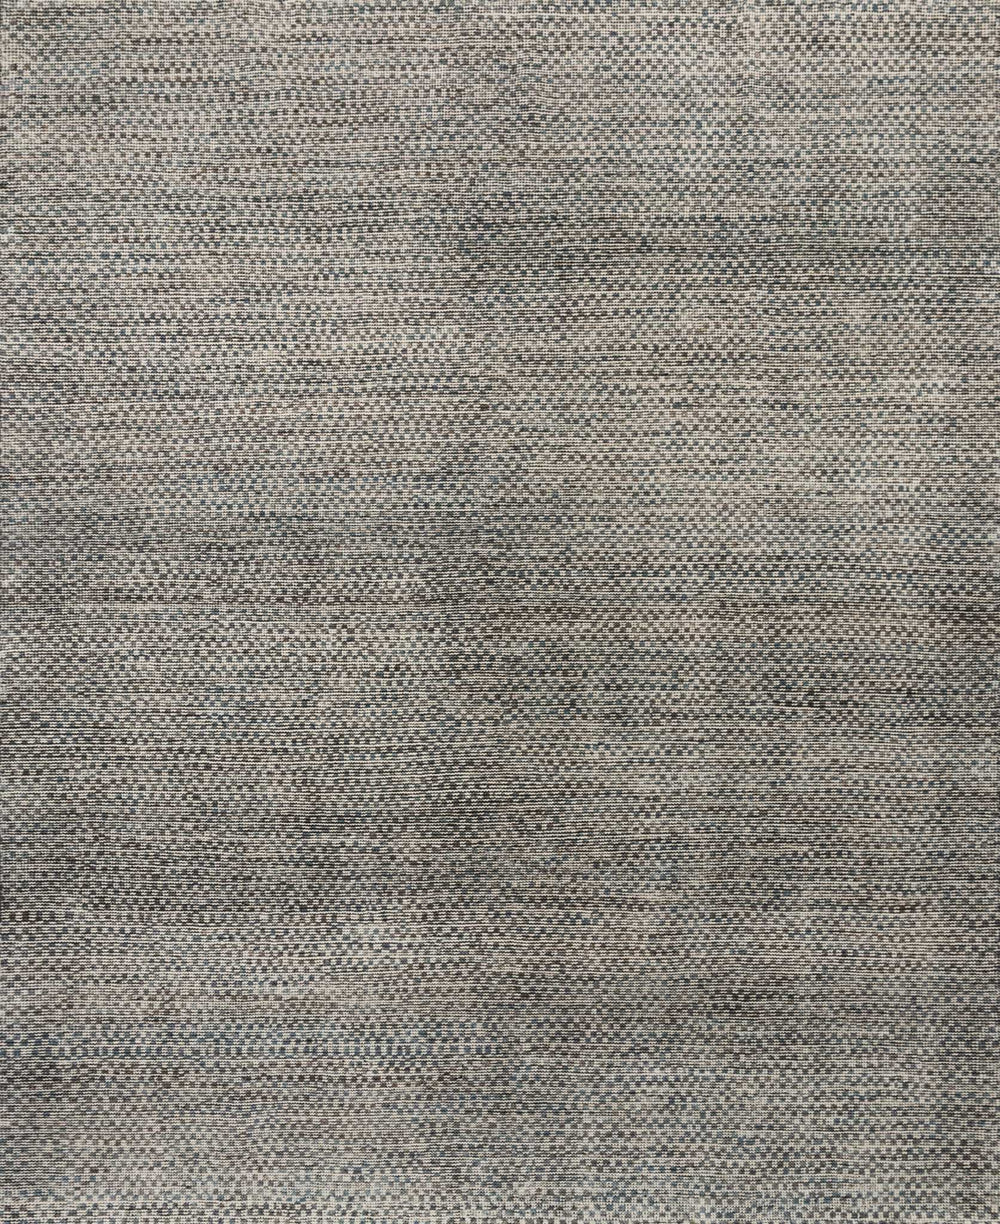 Hand-knotted in India of 100% wool, the Amara Collection creates a casual yet refined vibe with high-end appeal. Available in sizes up to 11'6'' x 15'.  Hand Knotted 100% Wool India AMM-06 Natural/Slate